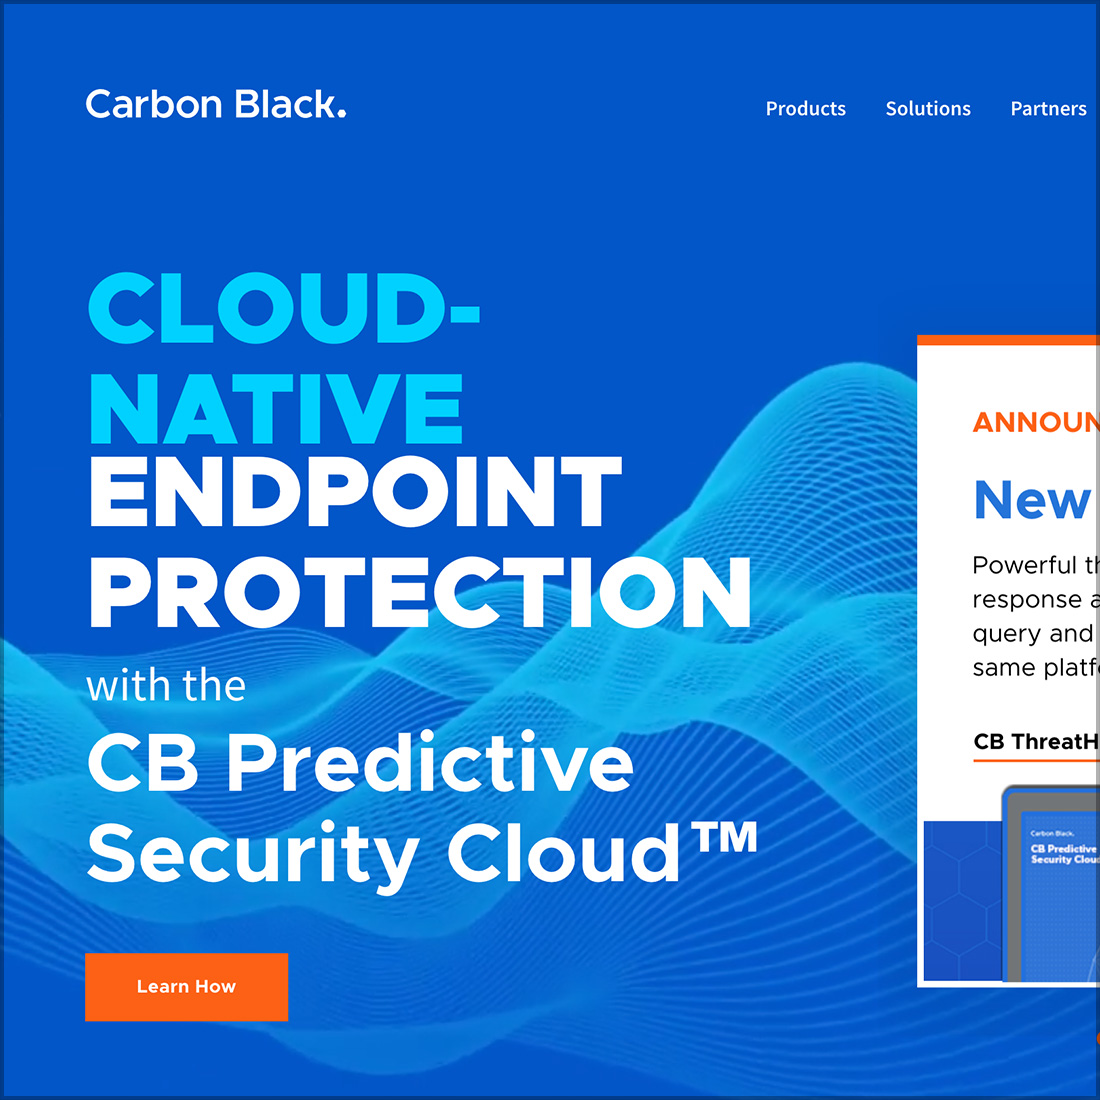 Carbon Black Website